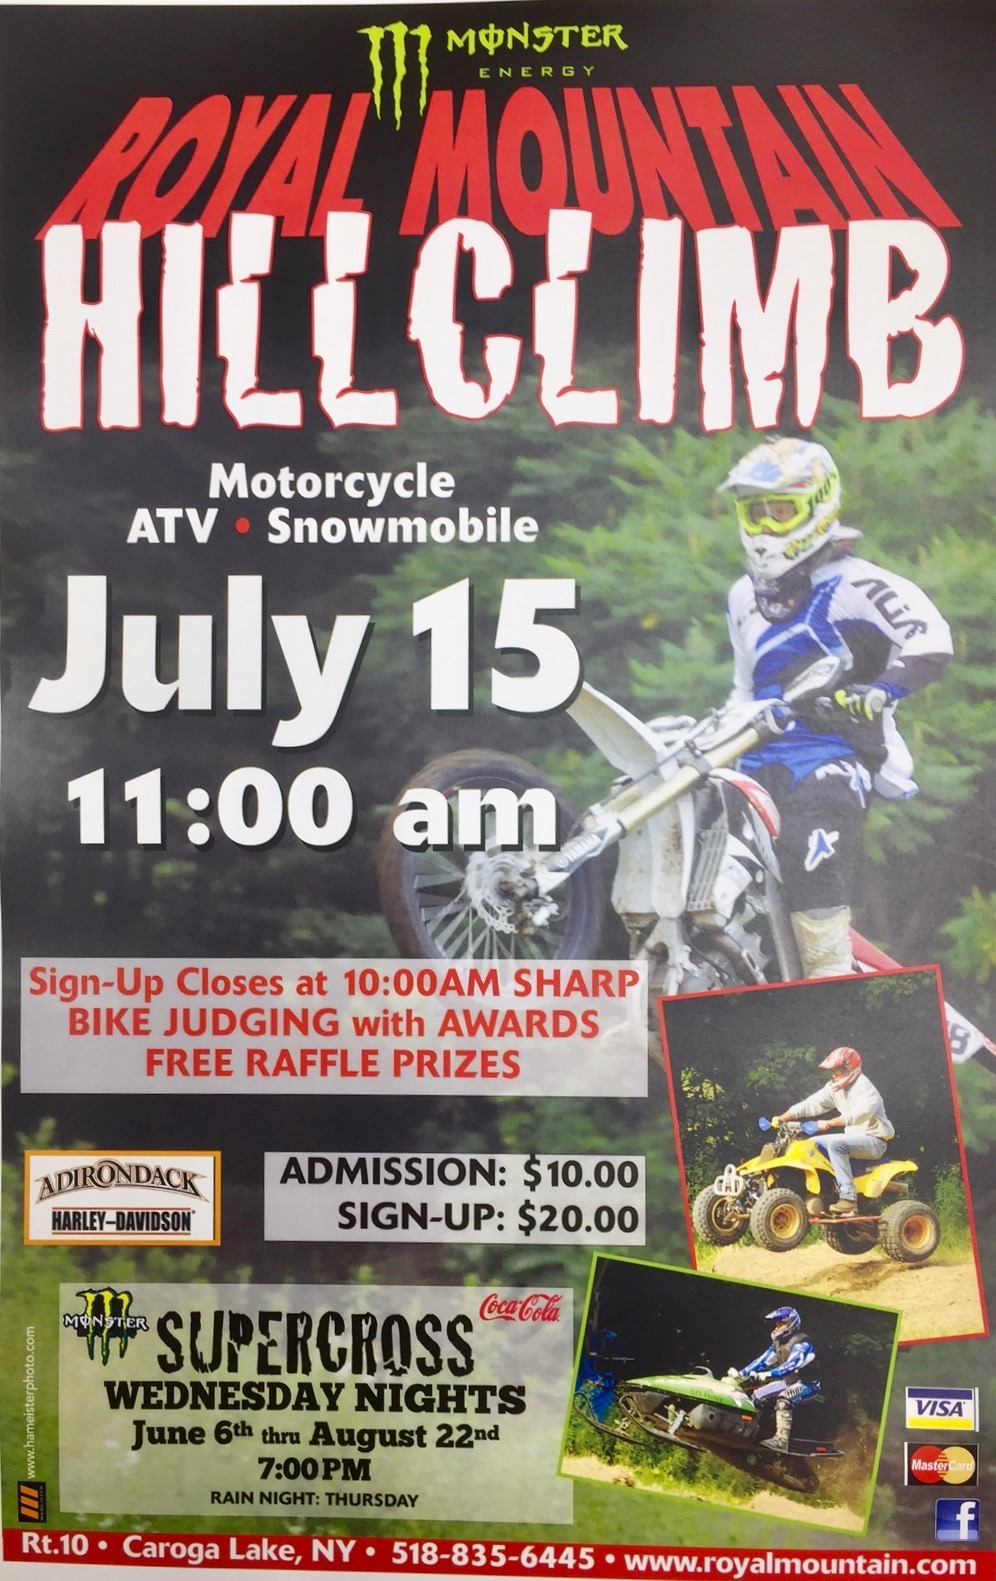 Ad poster for Royal Mountain's Annual Hillclimb event